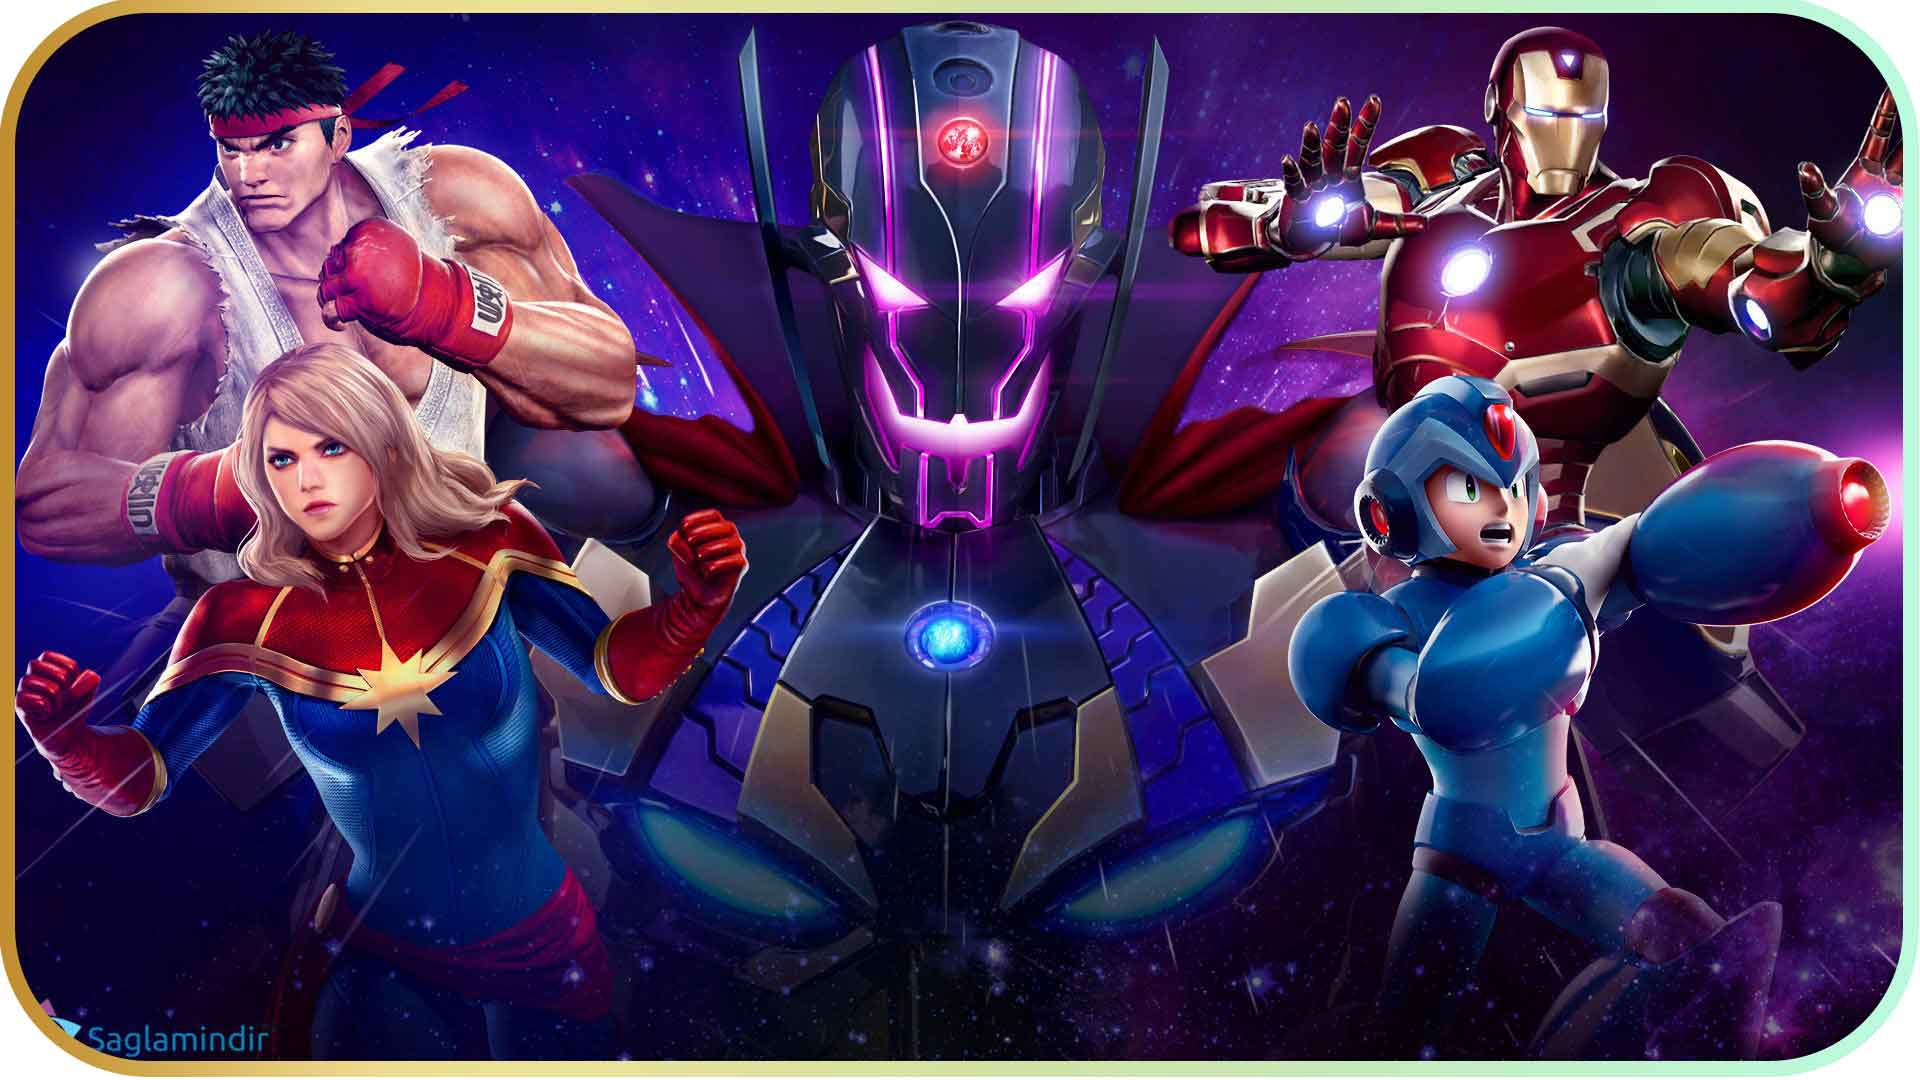 Marvel vs. Capcom Infinite saglamindir